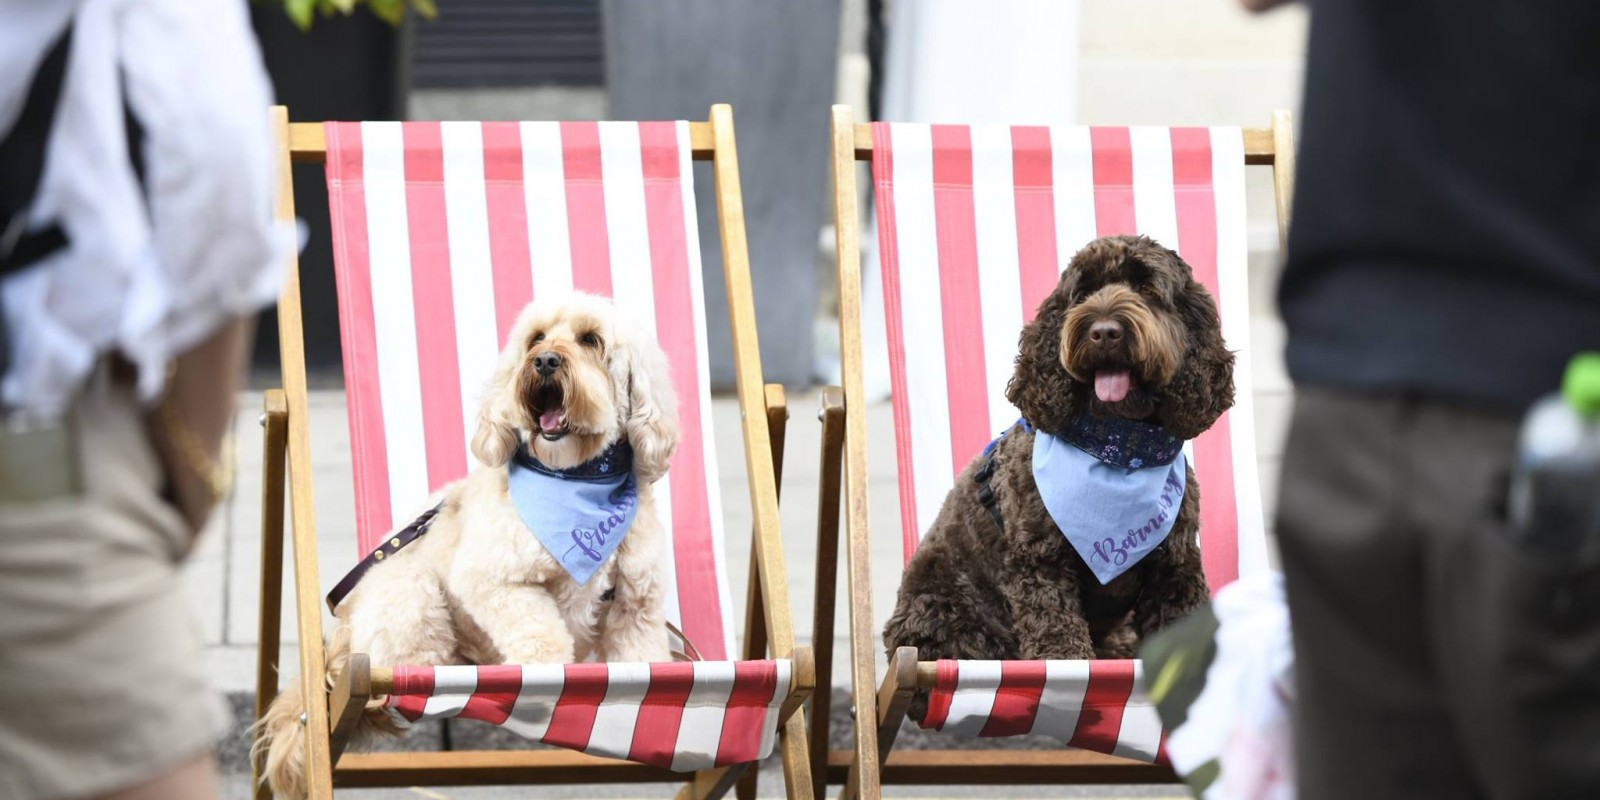 Dogs on Chairs